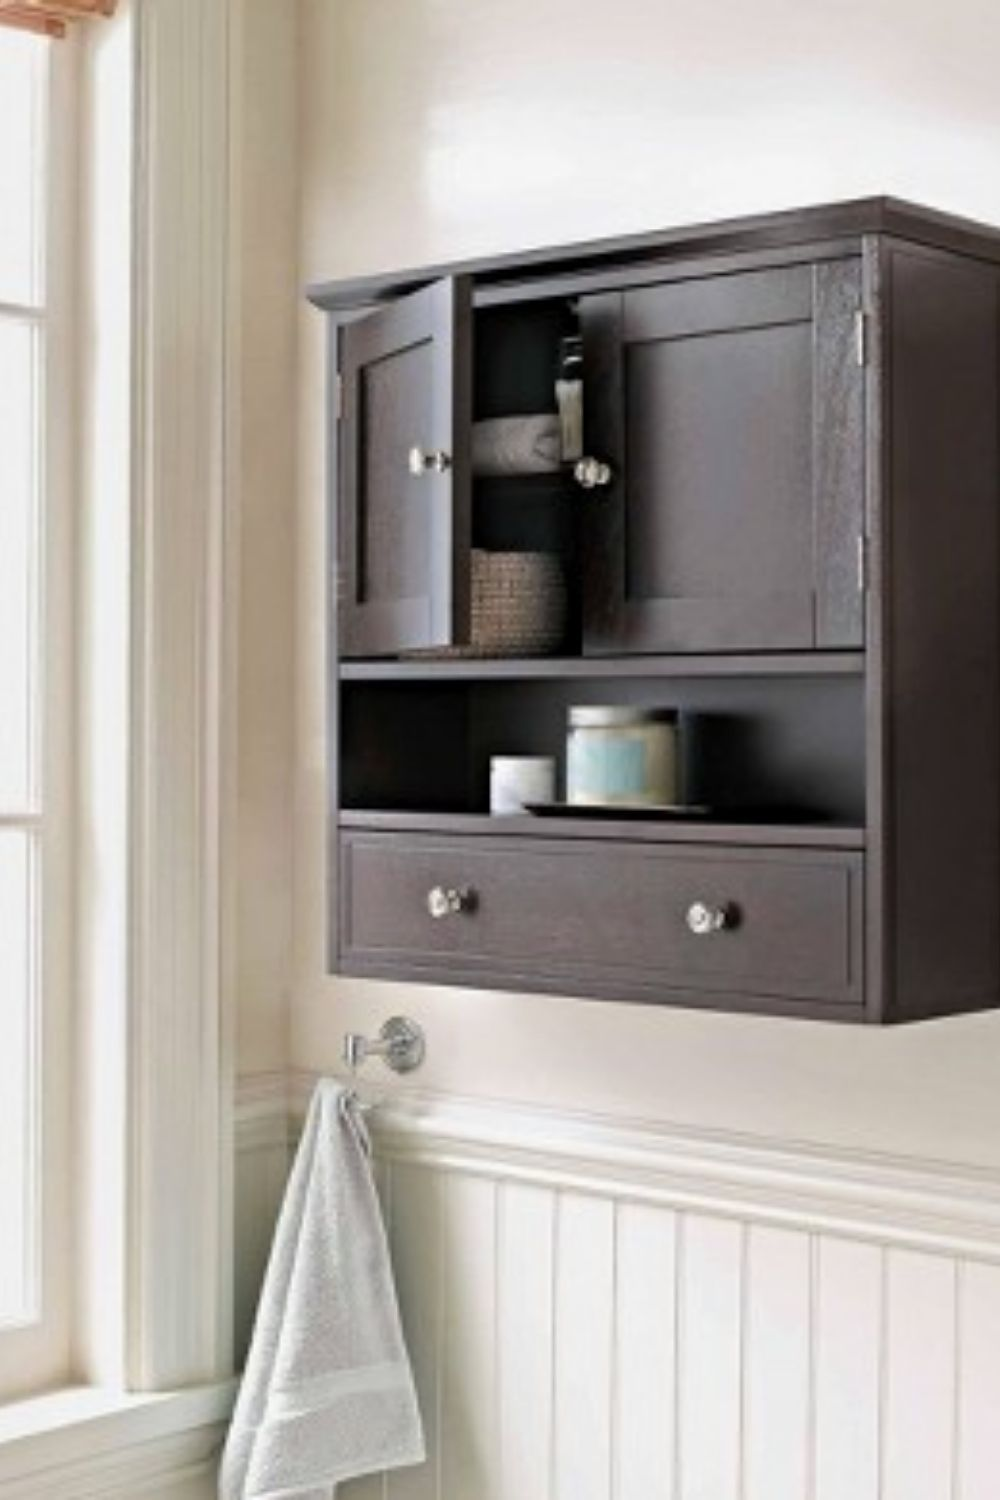 Bathroom Cabinets And Shelving